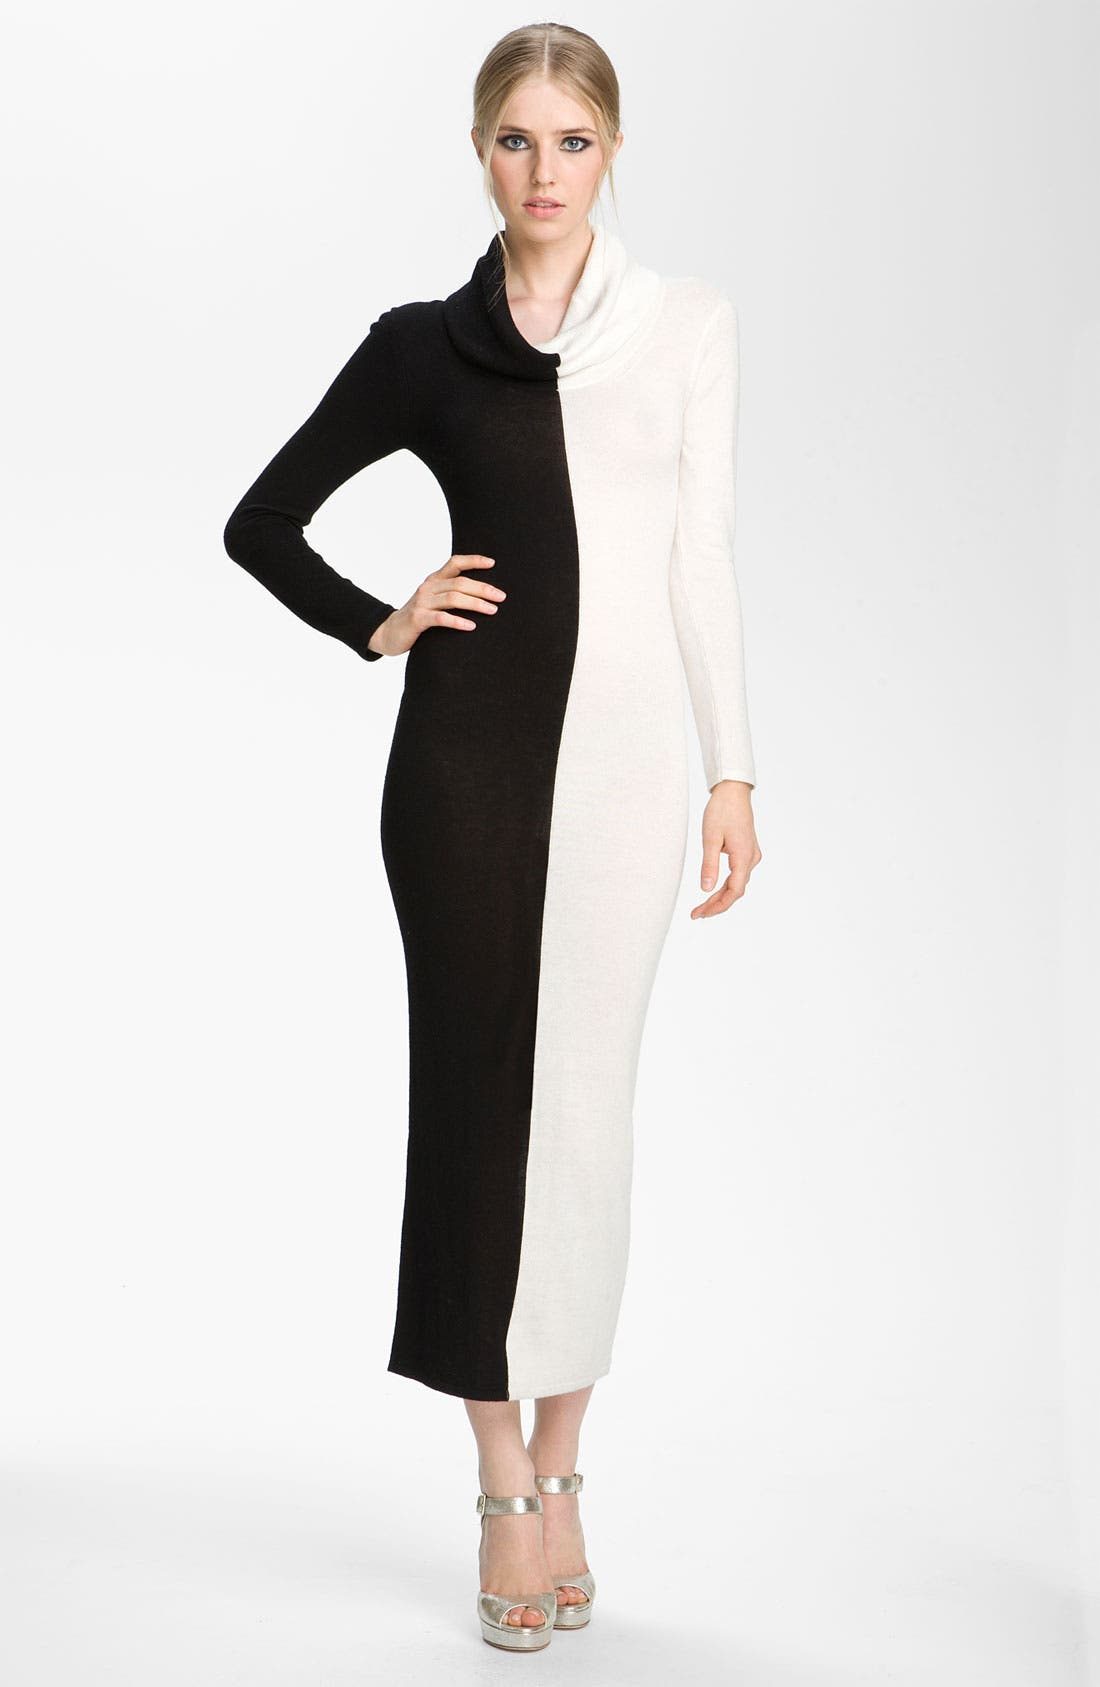 Alternate Image 1 Selected - Alice + Olivia 'Jori' Colorblock Maxi Dress